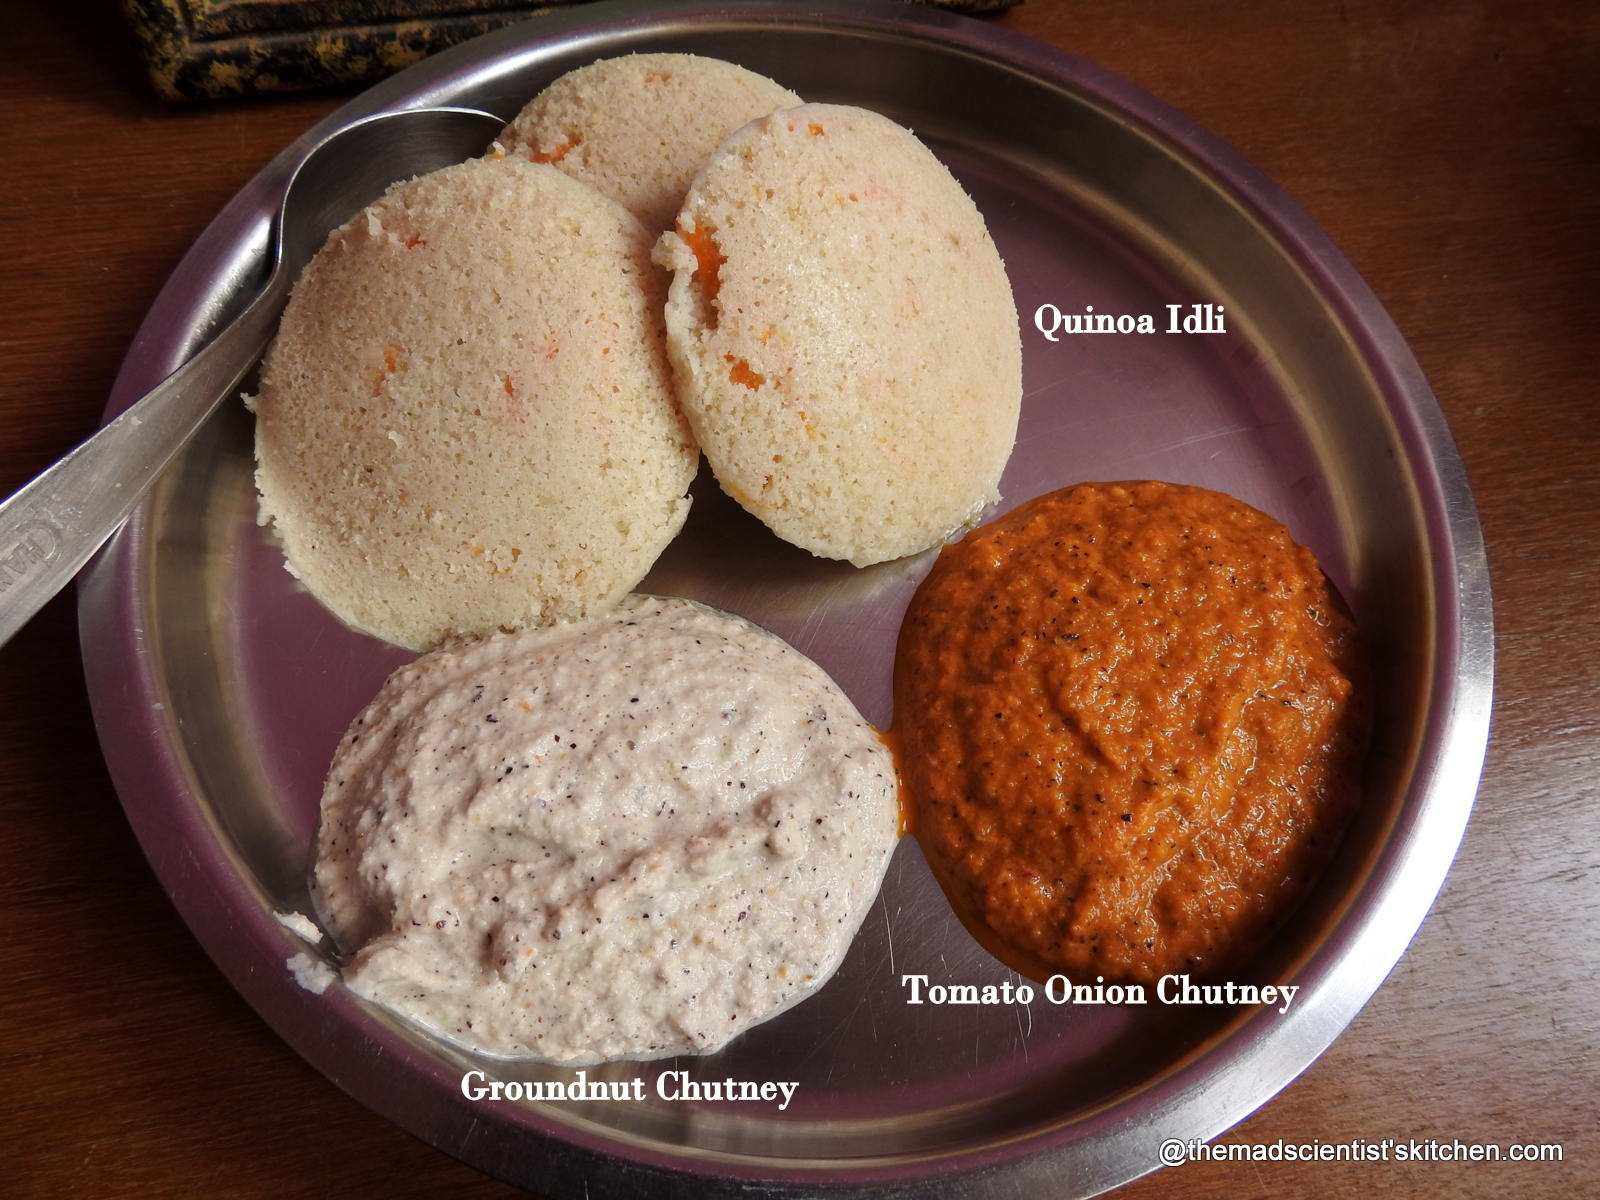 Idli, Healthy Breakfast, Fermented Food,Quinoa Idli